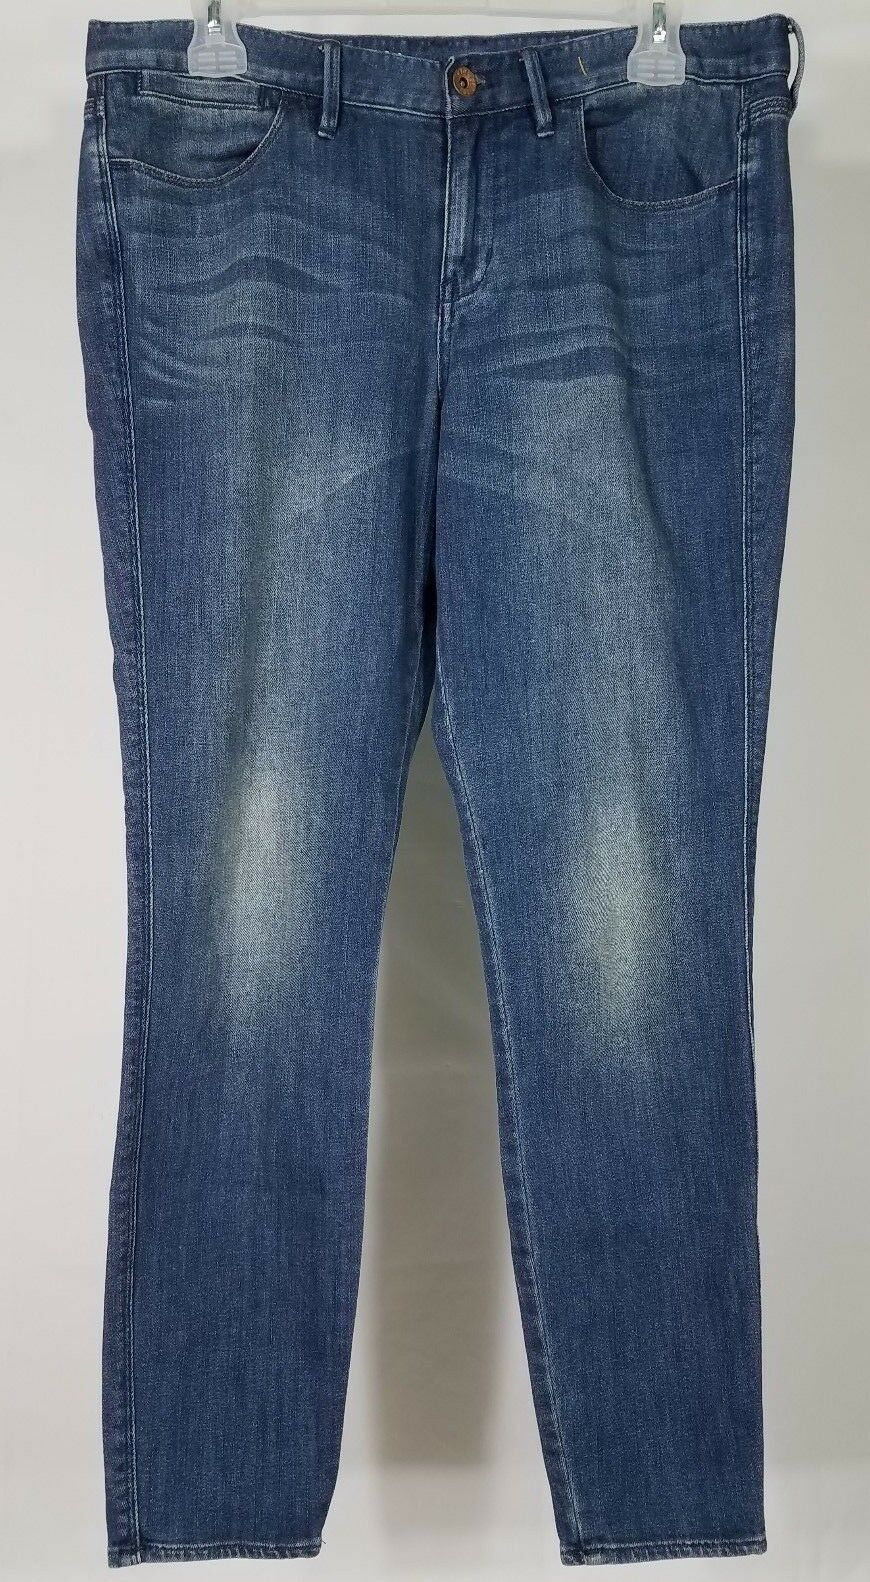 Madewell dark wash distressed Skinny Skinny ankle jeans ladies 30 33W x 29L